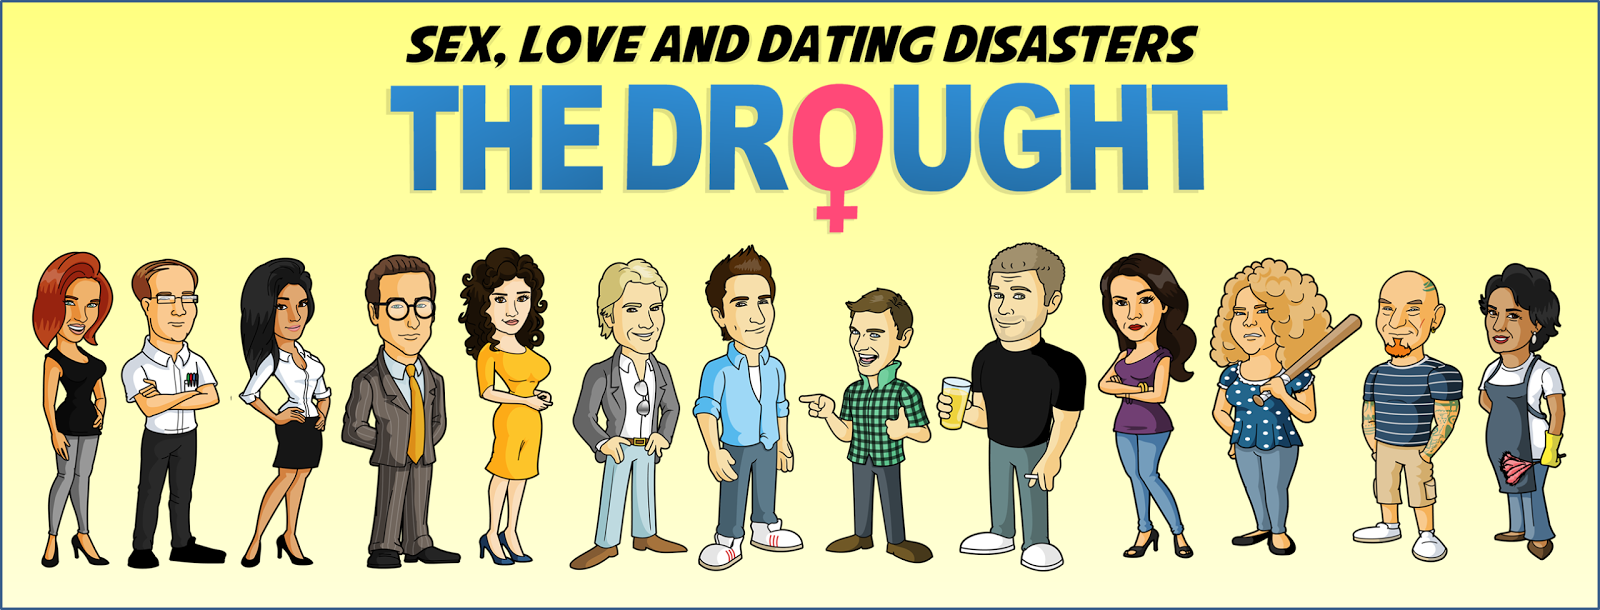 Comedy dating show